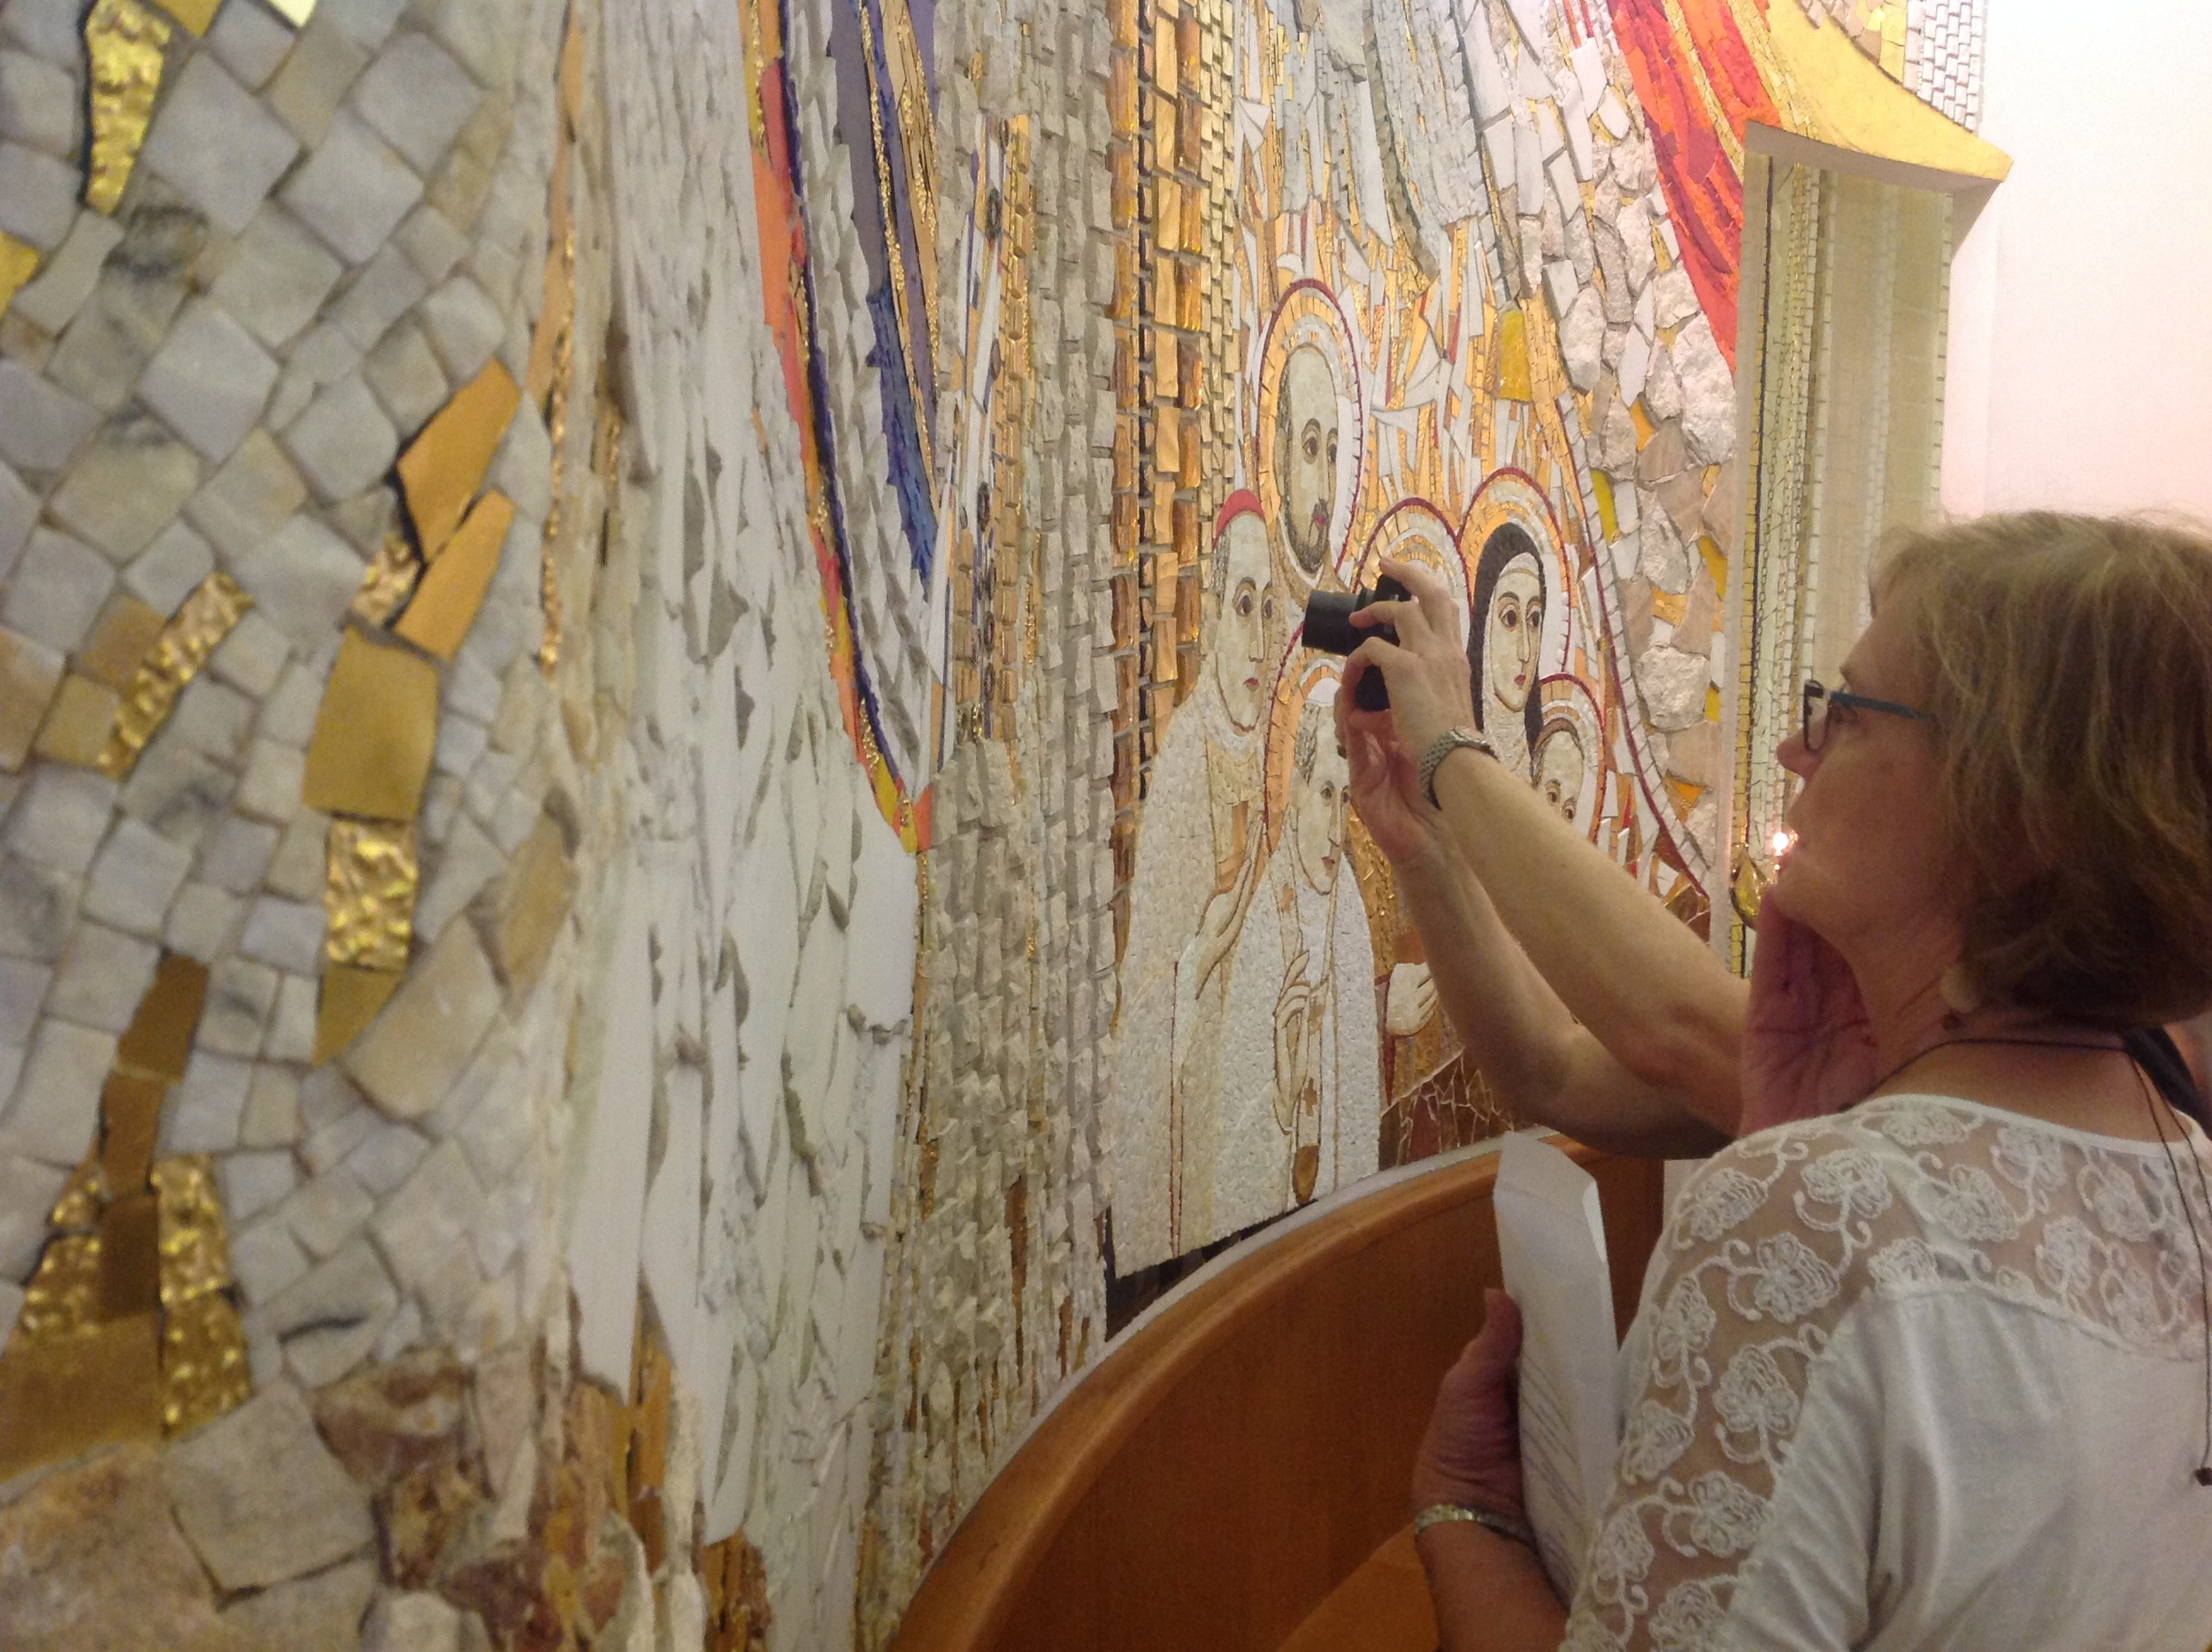 Participants get up close to the work of Father Rupnik at Centro Aletti in Rome.